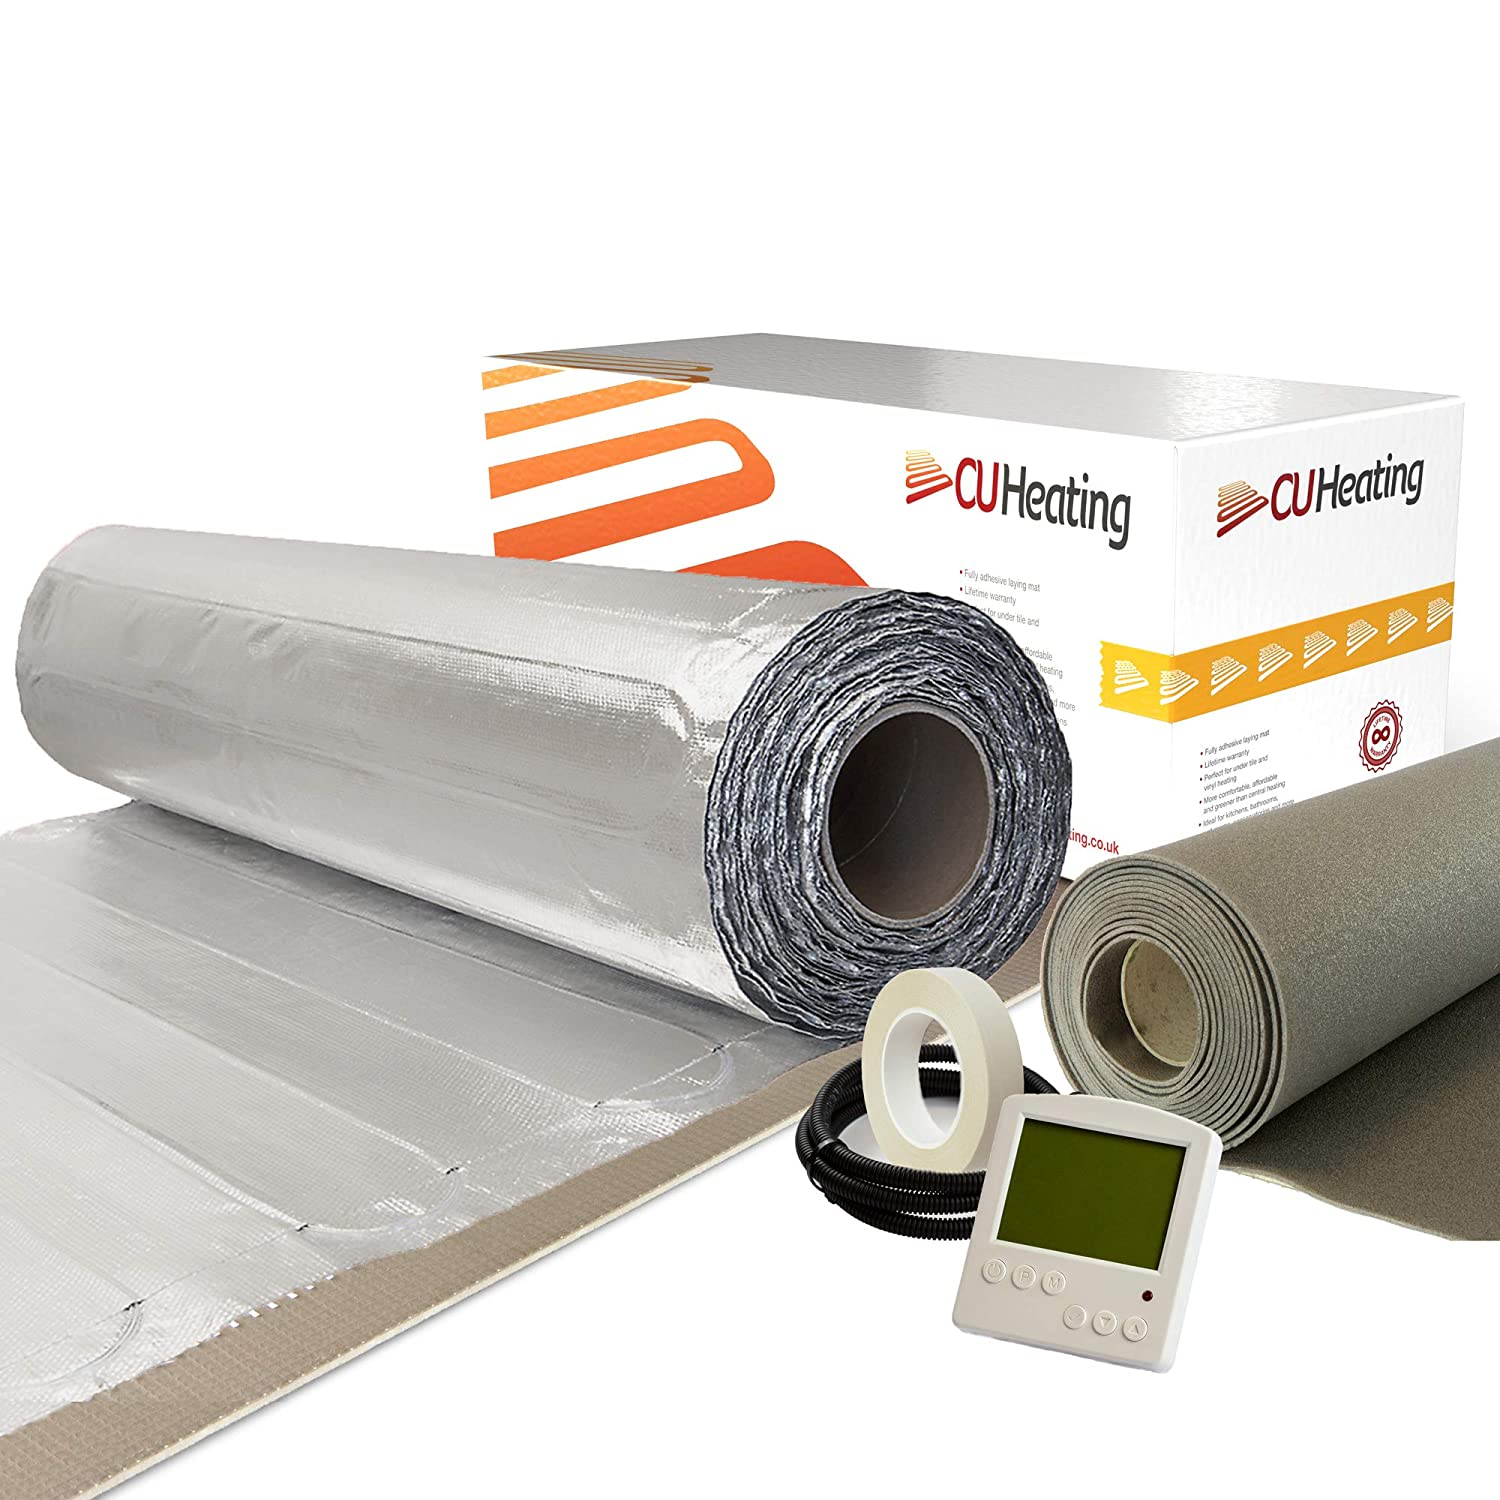 CU Heating Foil Electric Under Wood /& Carpet Heating Kit 150w//m/² FME *All Sizes* with Touch-Screen Thermostat 2m/², Pearl White Thermostat **Includes Insulation Underlay**